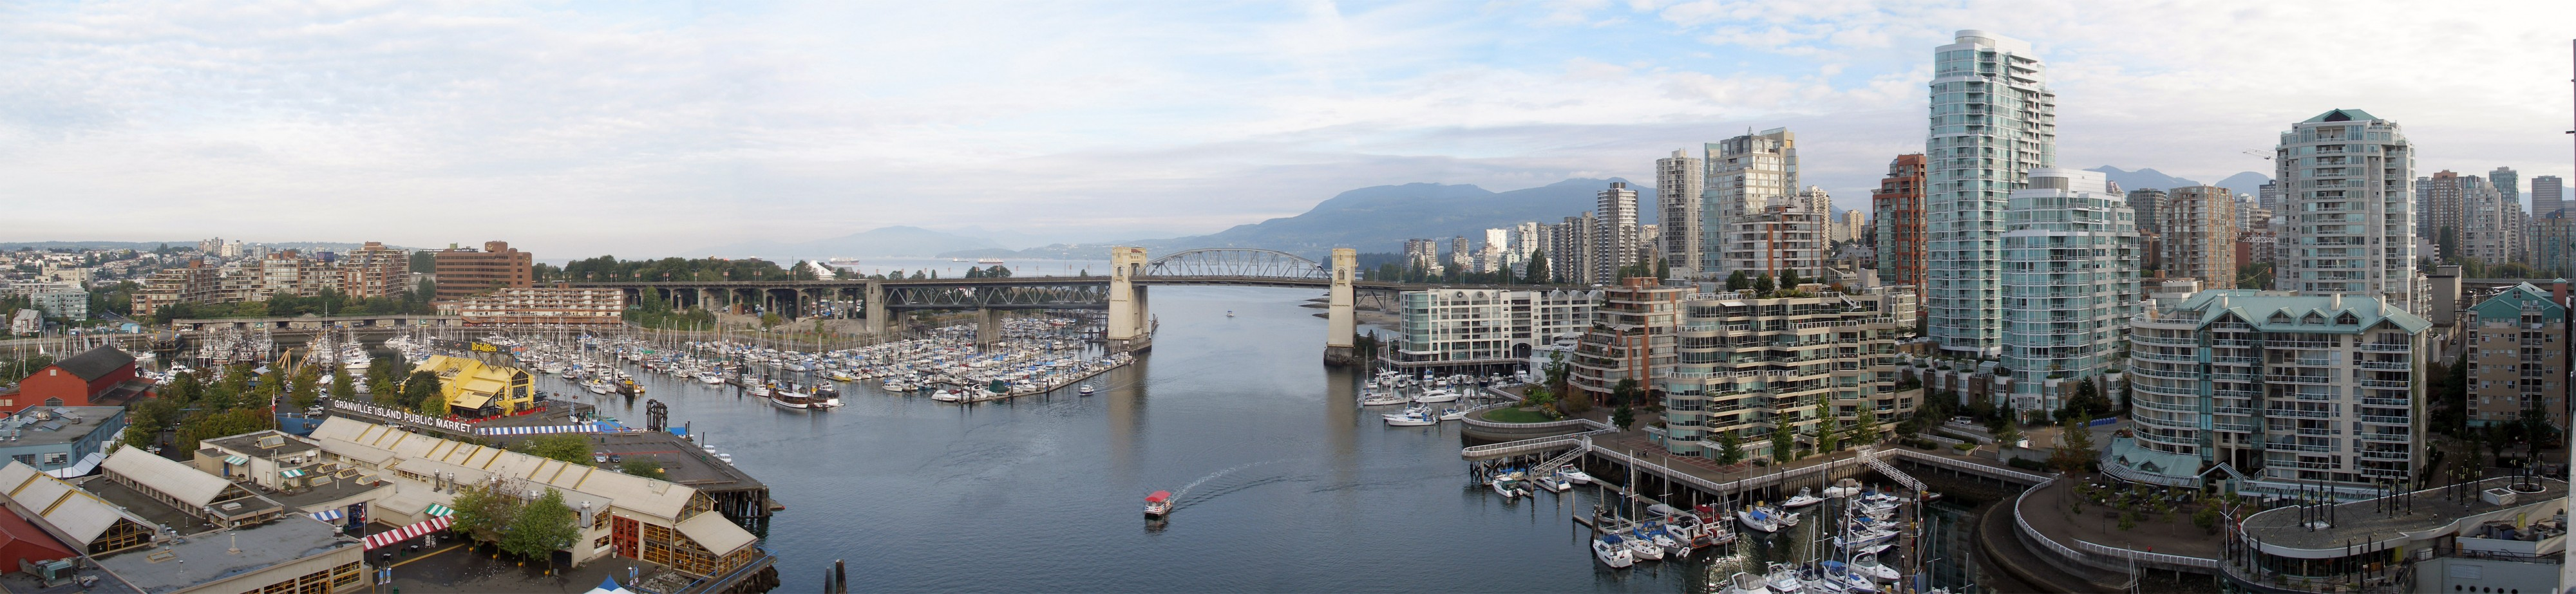 Burrard bridge from granville bridge vancouver